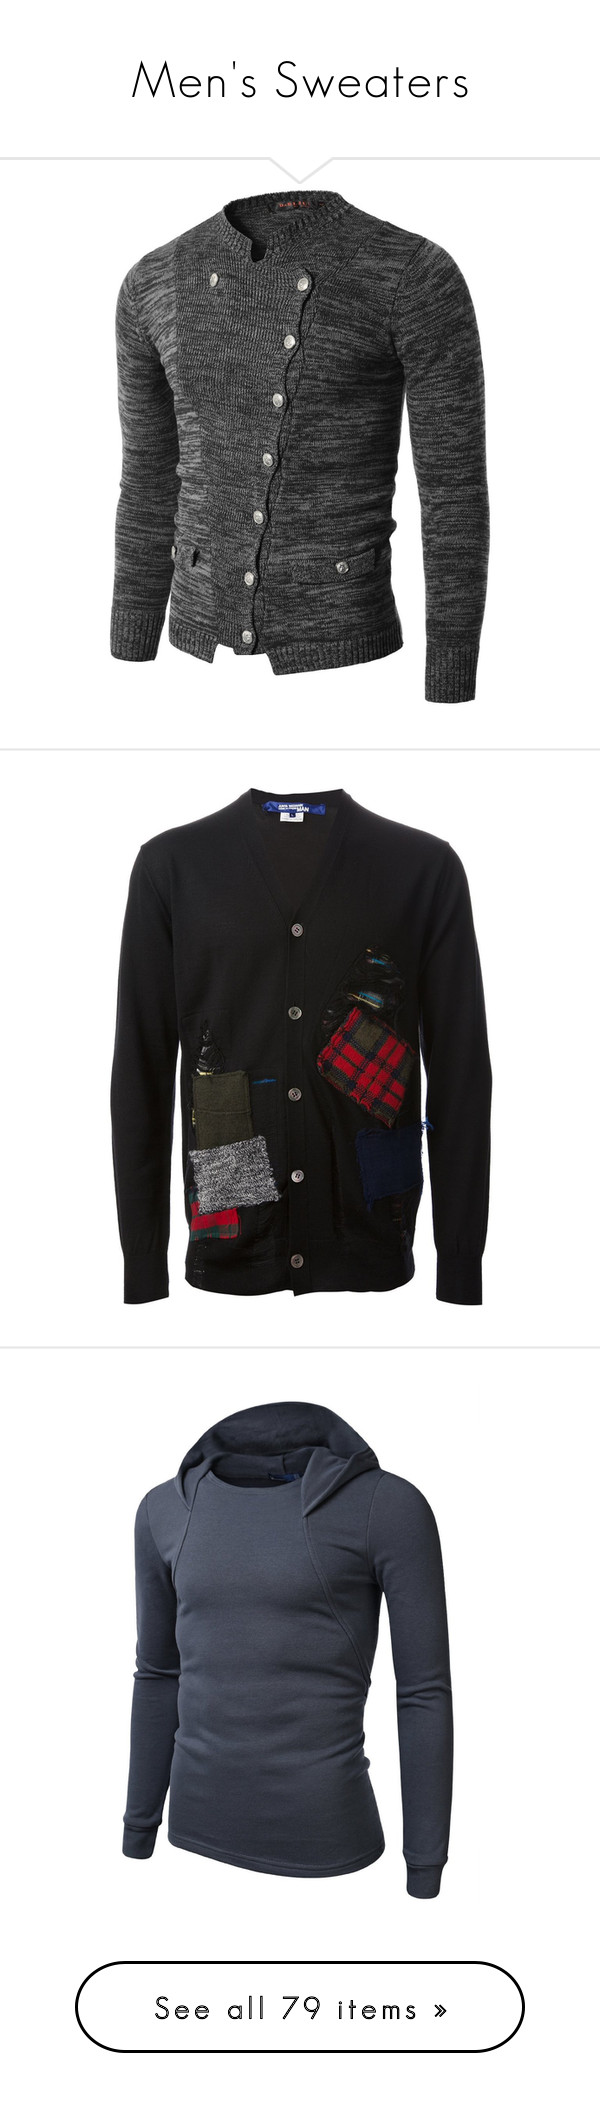 """""""Men's Sweaters"""" by the-walking-doctor ❤ liked on Polyvore featuring men's fashion, men's clothing, men's sweaters, tops, cardigans, men, navy blue cardigan, v-neck tops, button front cardigan and long sleeve tops"""